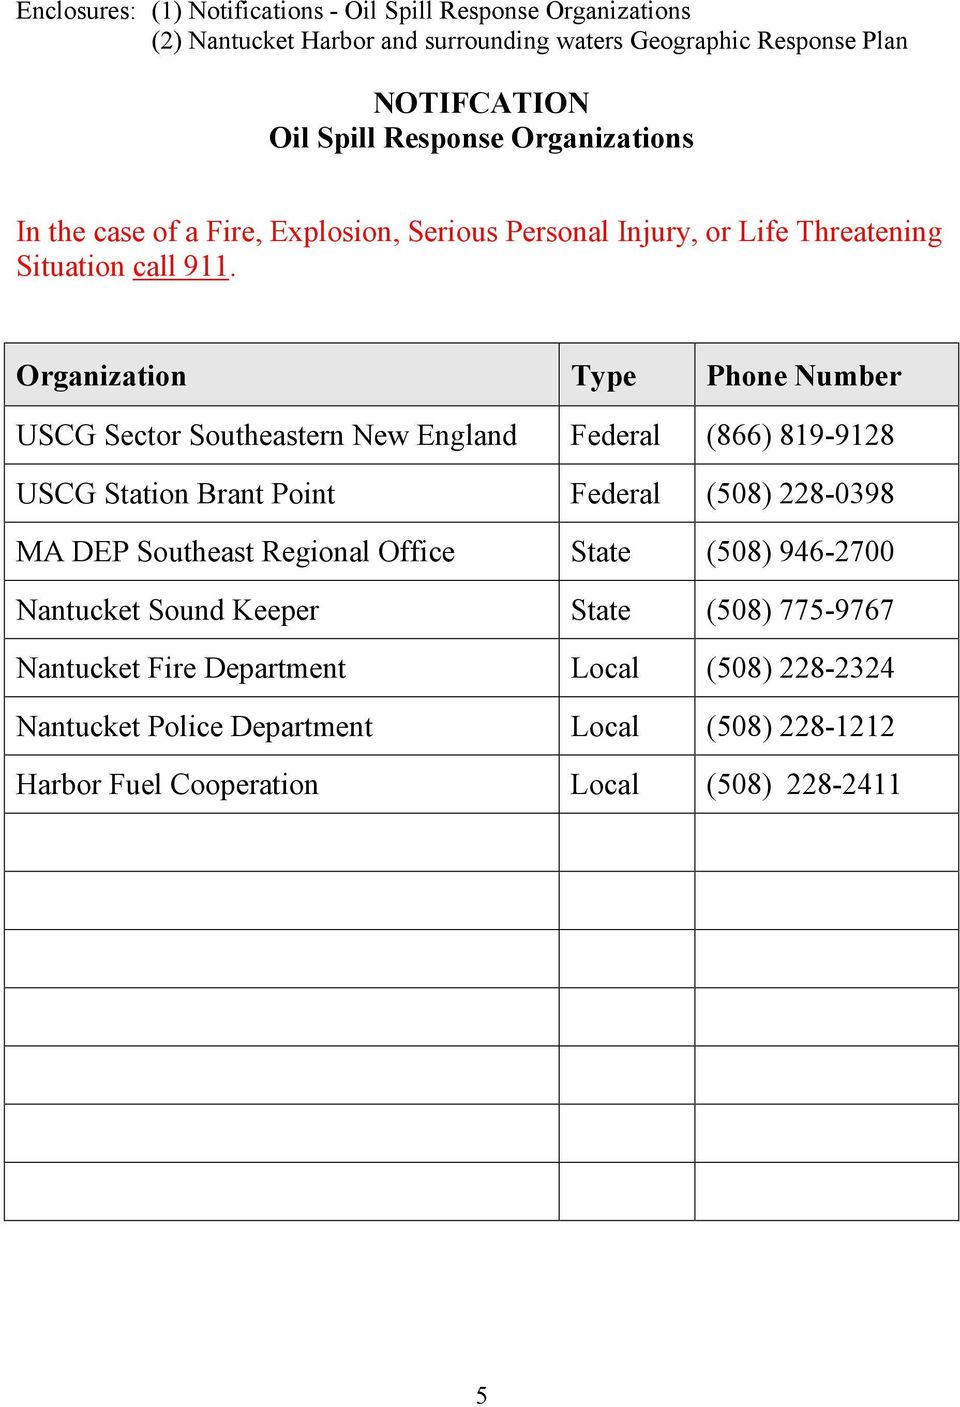 Organization Type Phone Number USCG Sector Southeastern New England Federal (866) 819-9128 USCG Station Brant Point Federal (508) 228-0398 MA DEP Southeast Regional